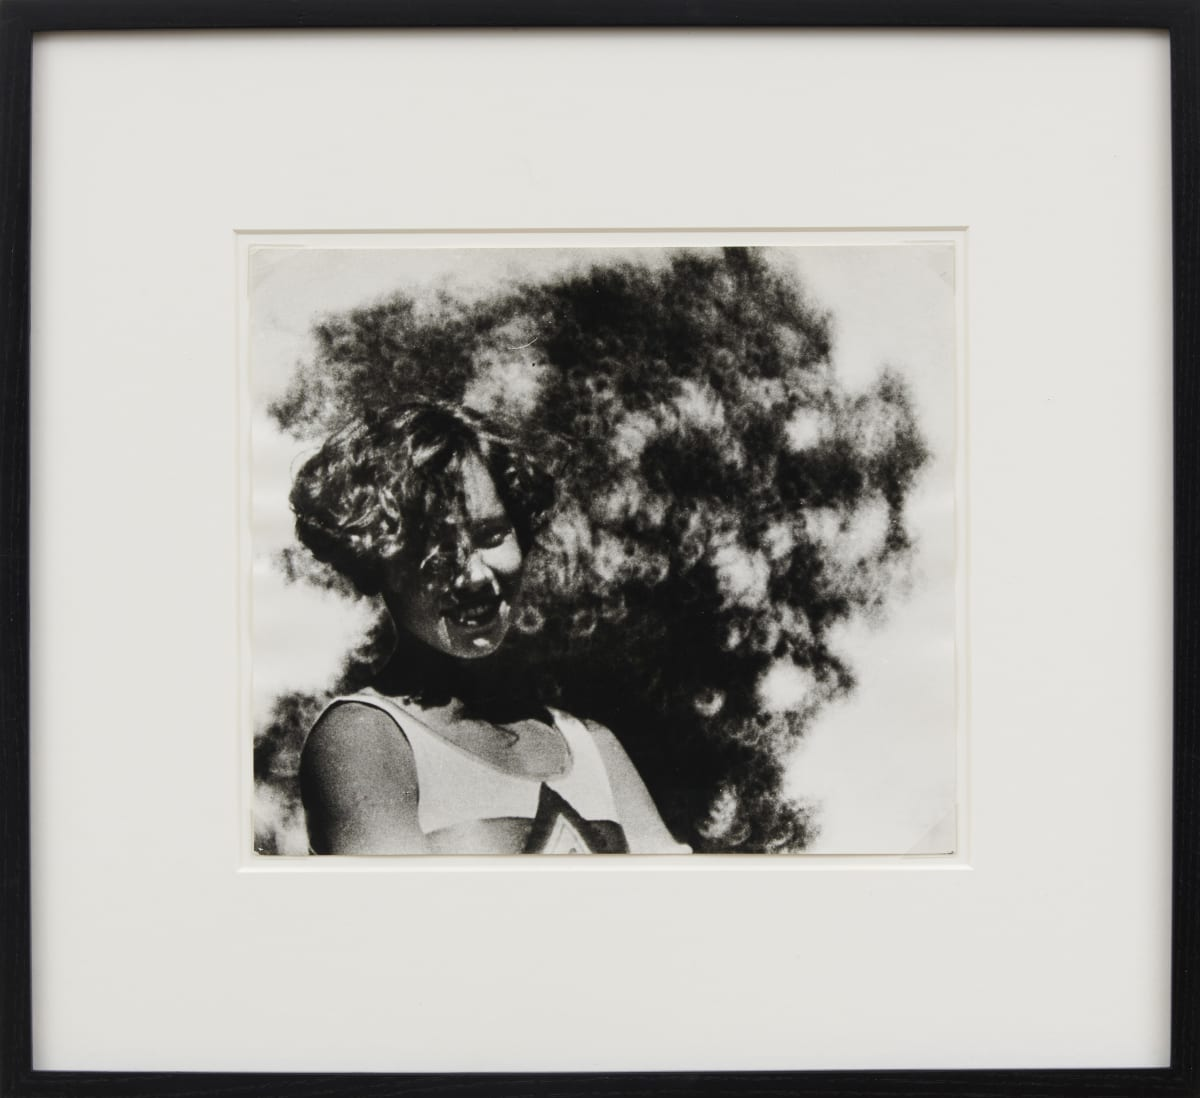 Alexander RODCHENKO Bunch of flowers, 1936 Black and white photograph 23.4 x 27.5 cm